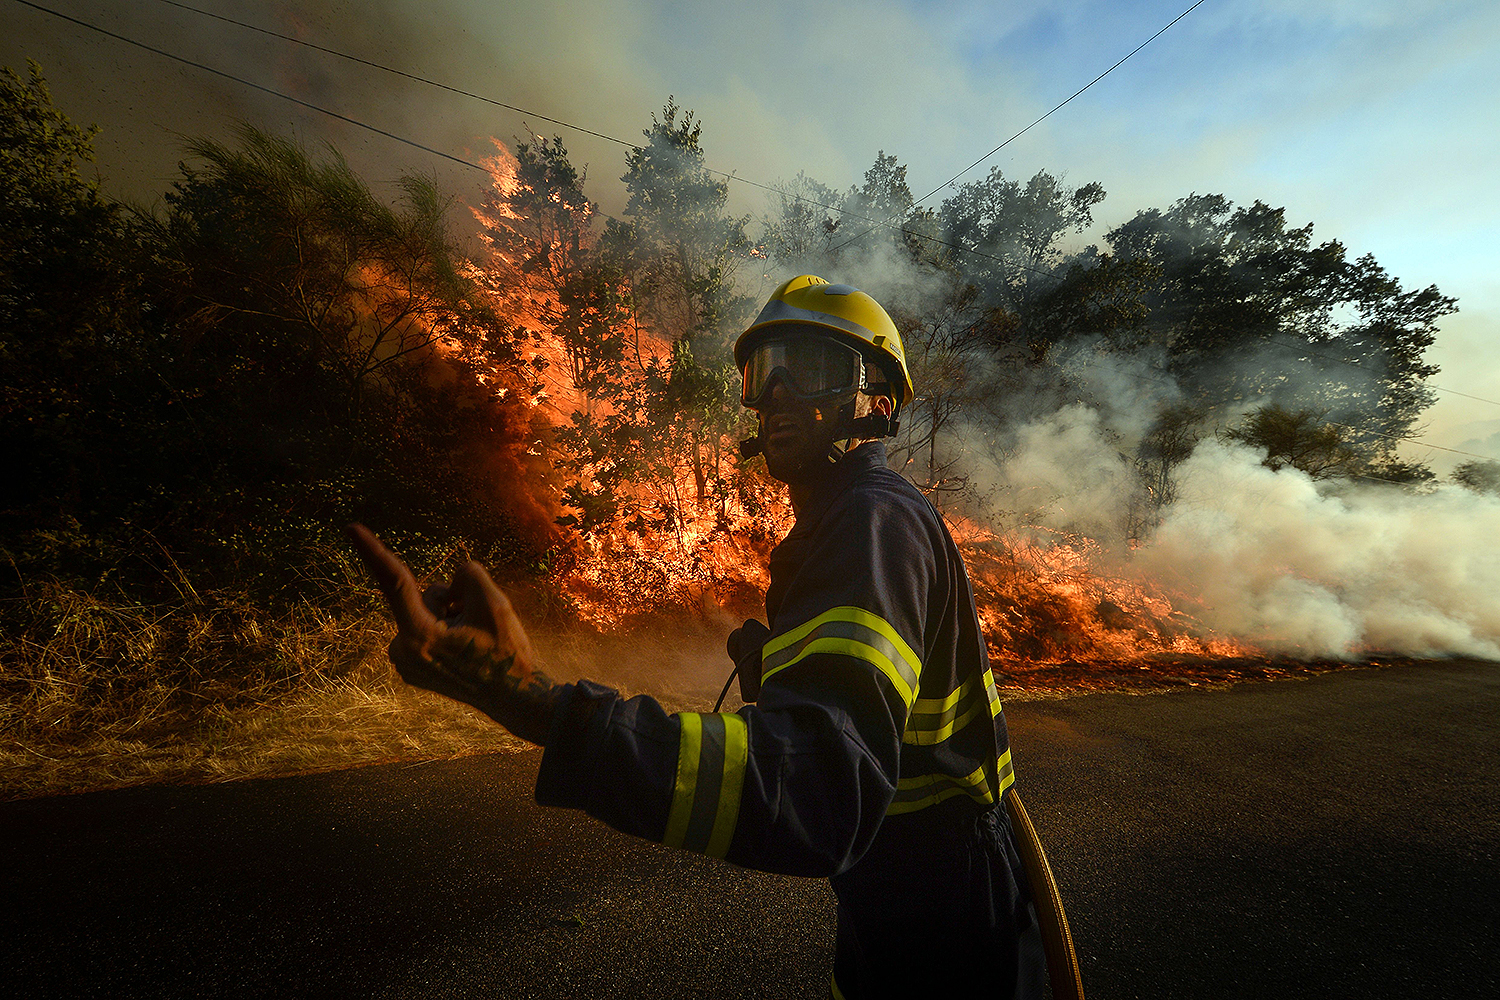 A firefighter motions to a fire squad as a wildfire burns in the village of San Cristobal, Mexico, near Monterrey on July 29. MIGUEL RIOPA/AFP via Getty Images